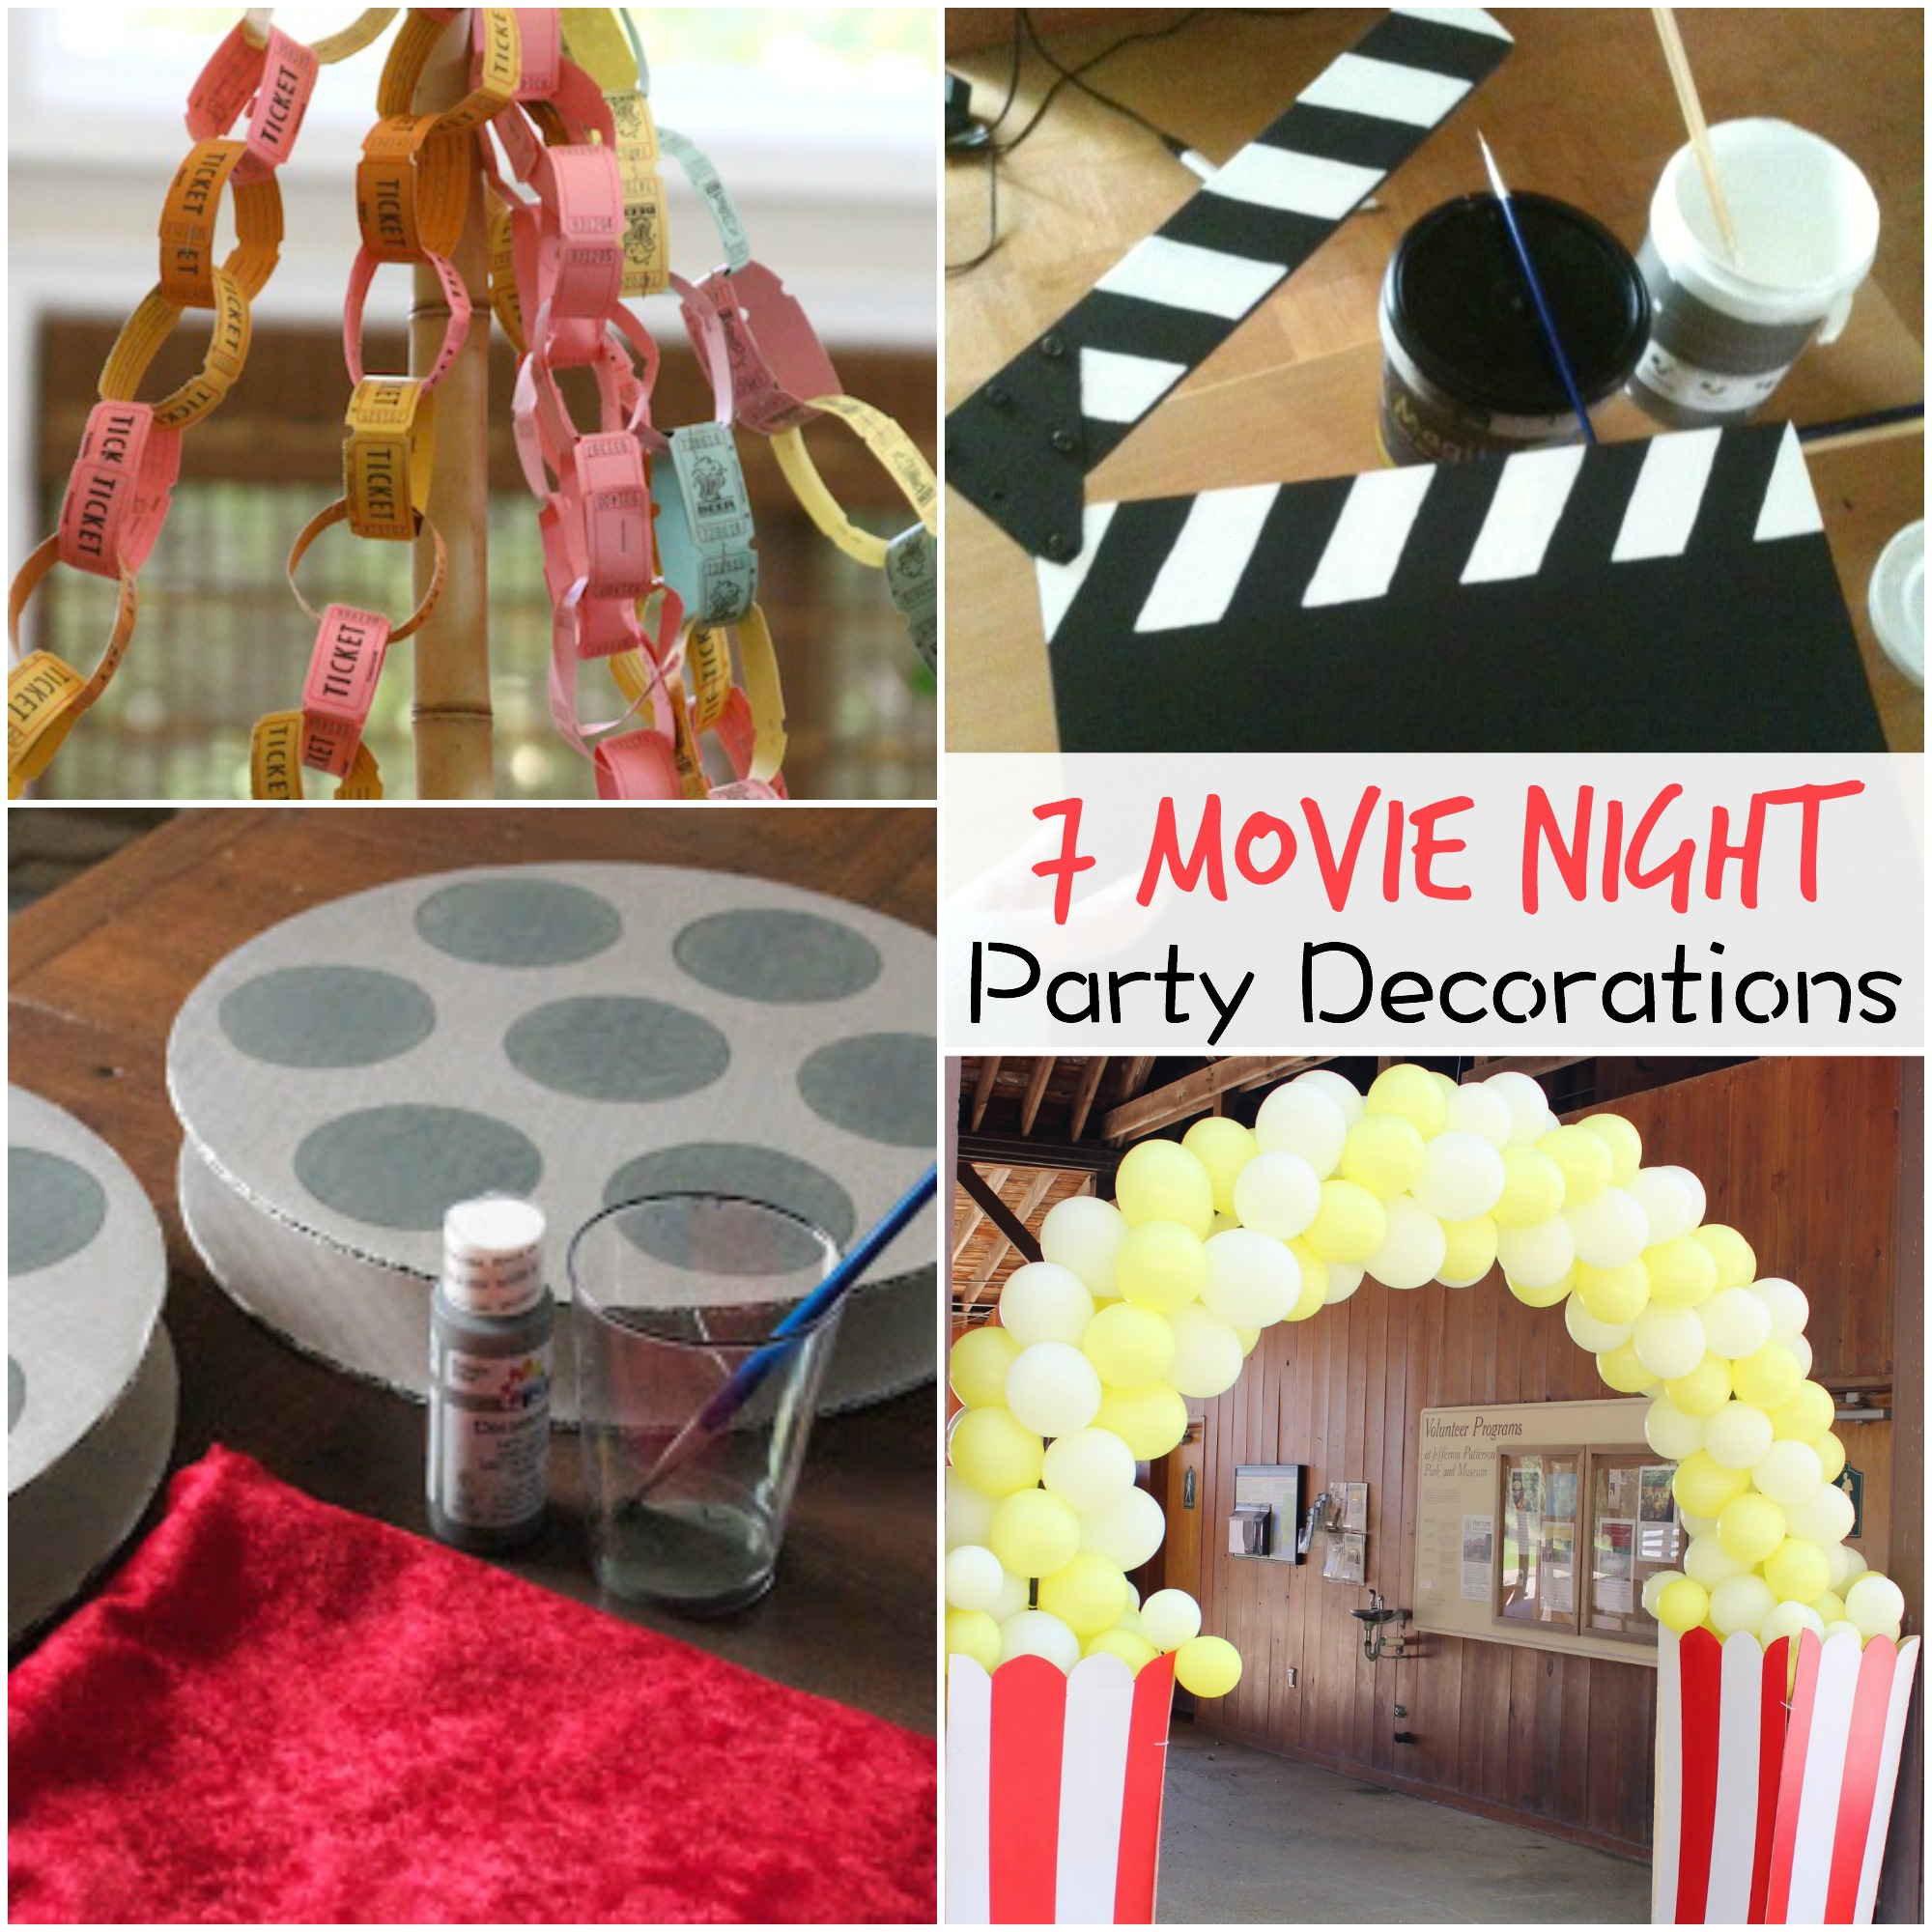 7 Movie Night Party Decorations